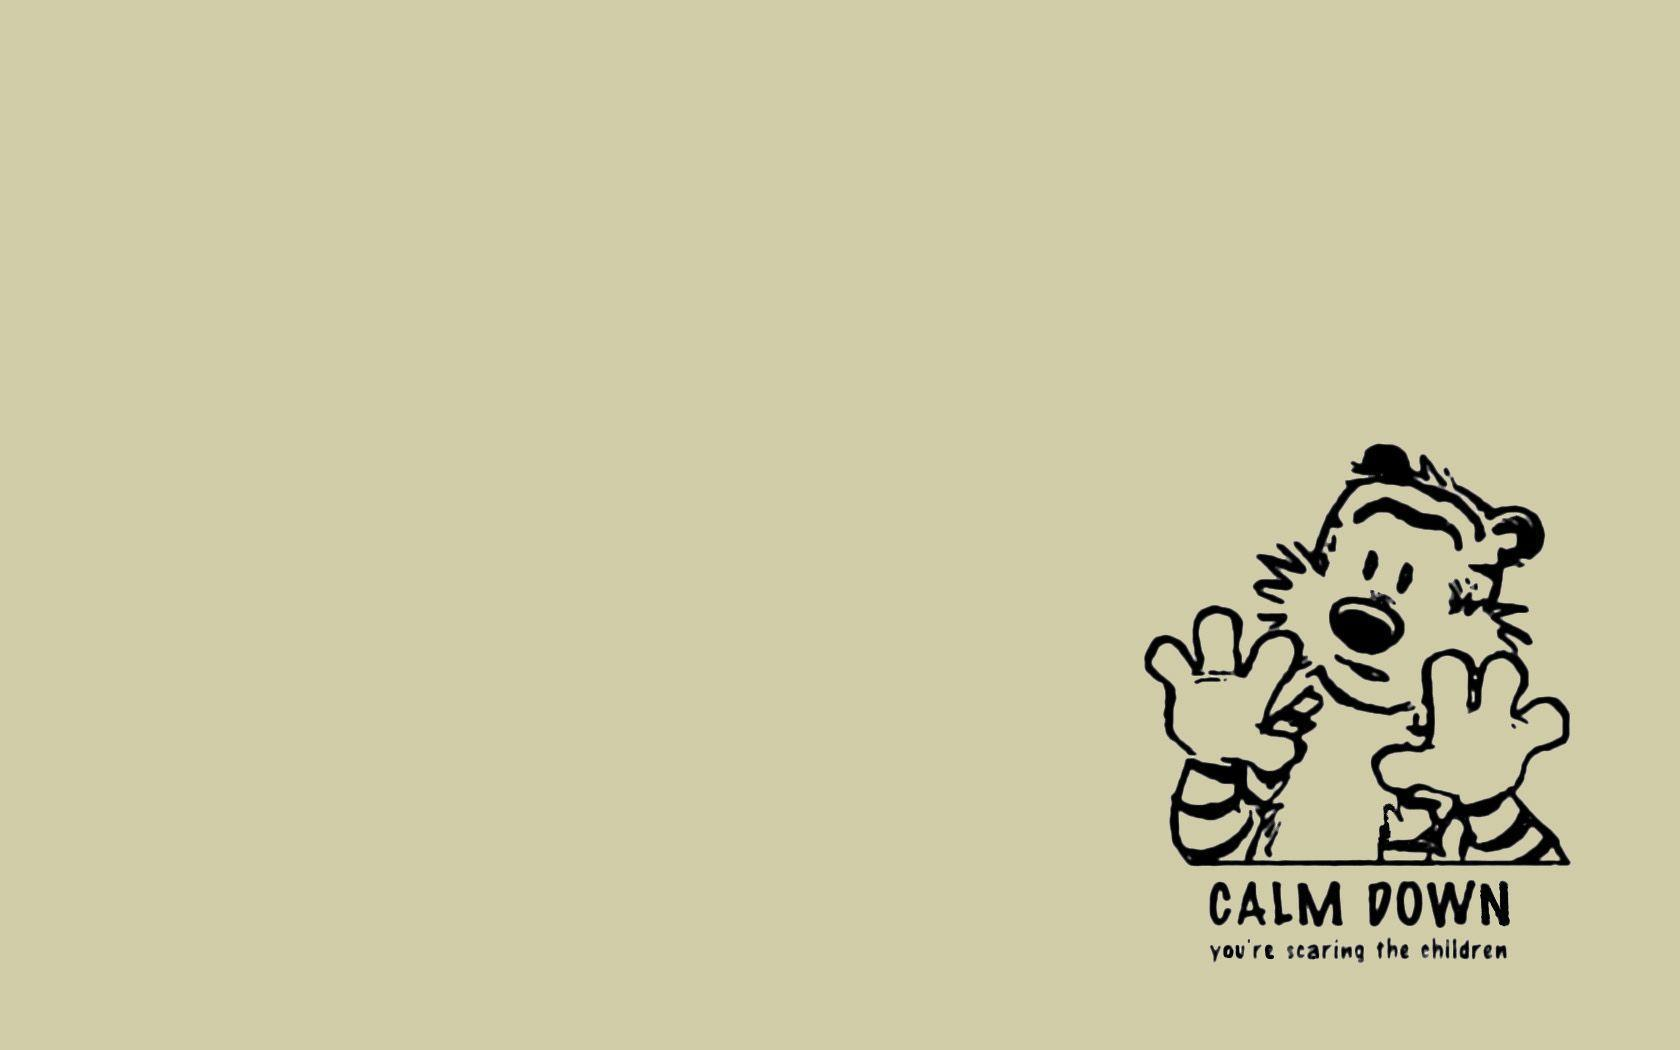 calvin and hobbes wallpapers – 1680×1050 High Definition Wallpapers